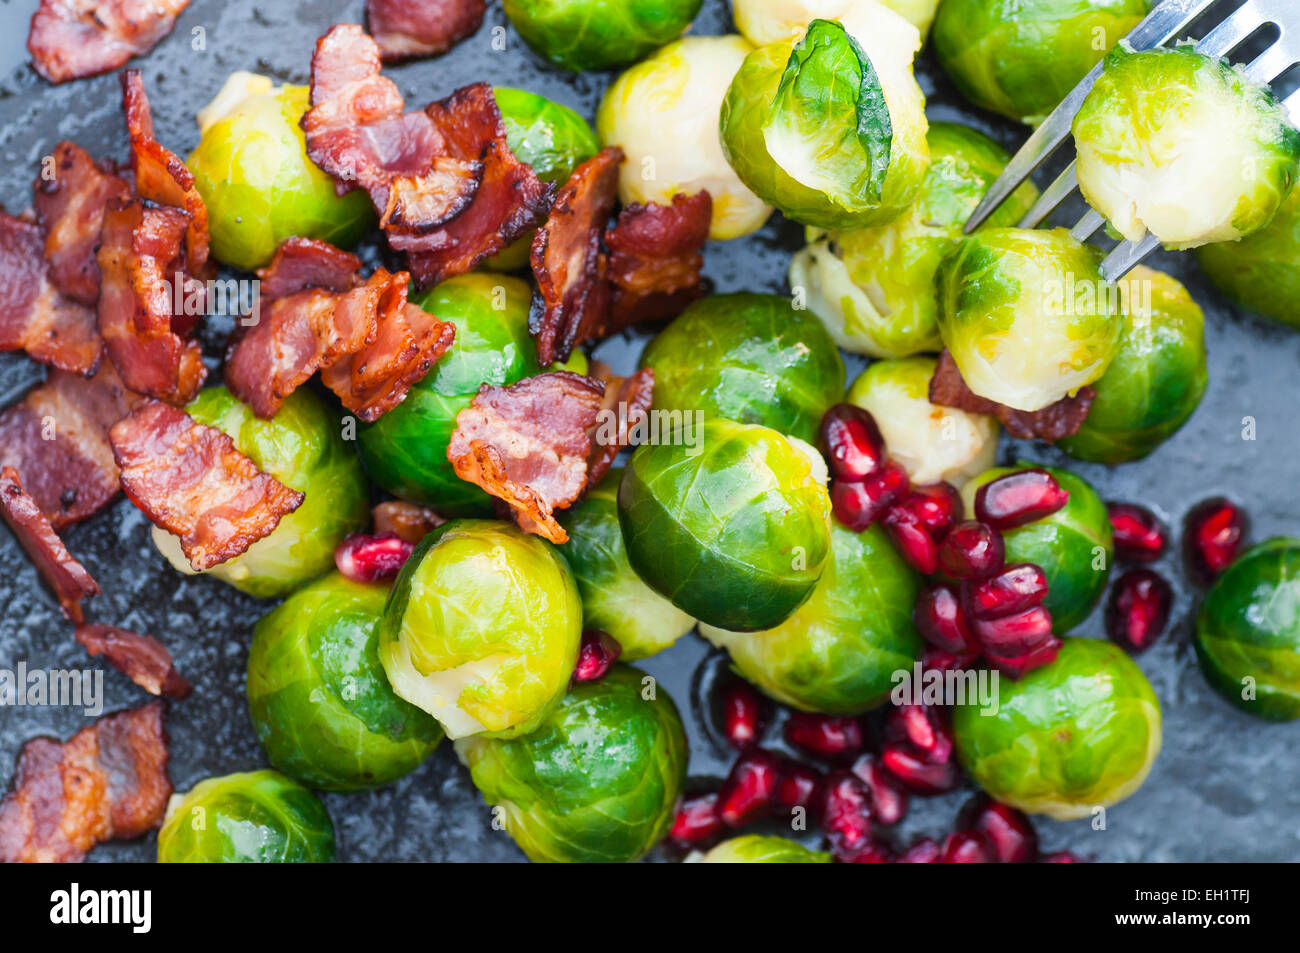 Buttered brussels sprouts with bacon and pomegranate. - Stock Image